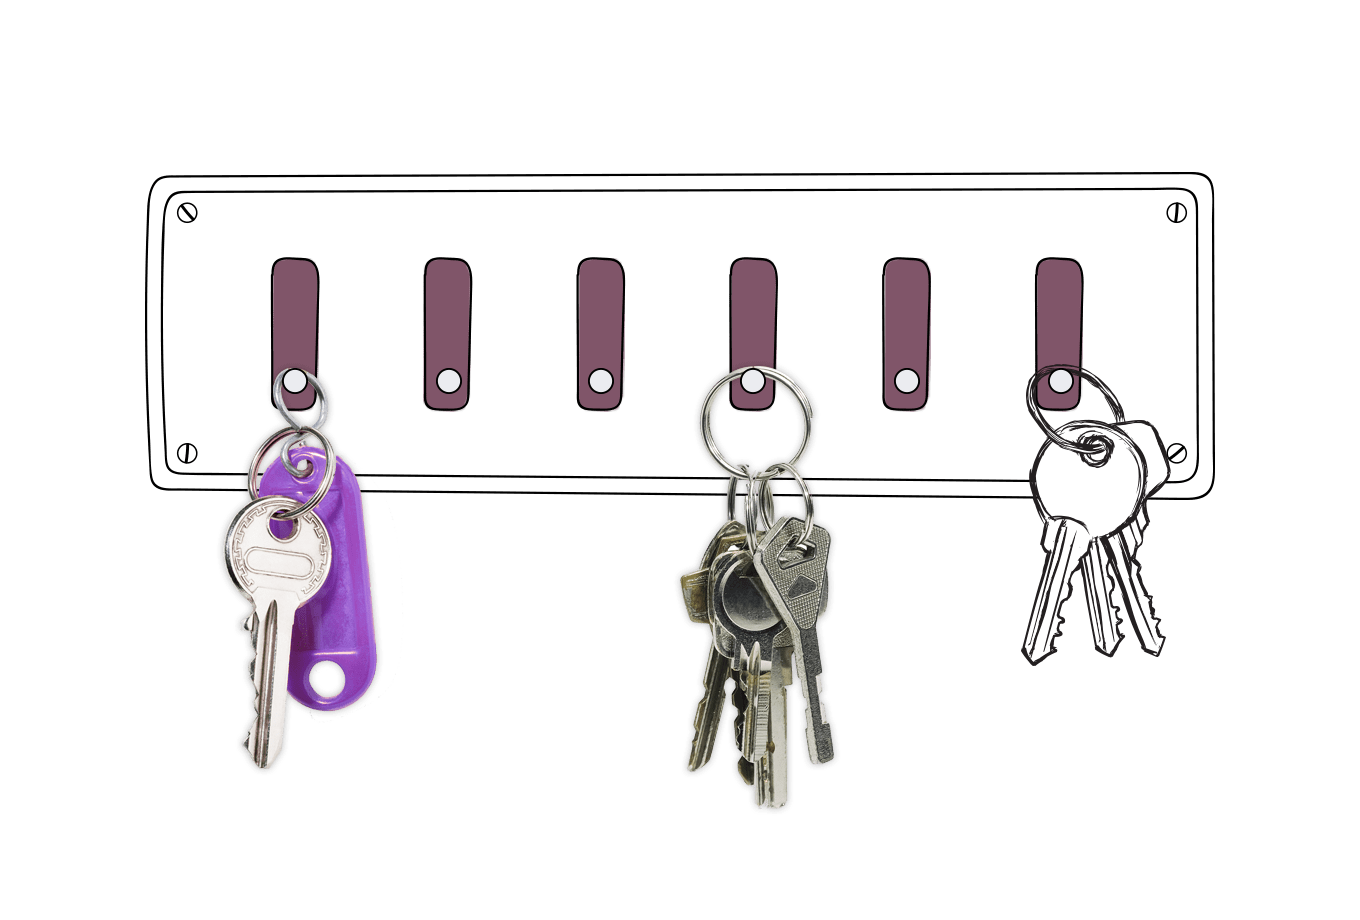 landlord insurance illustration of keys hanging on hooks